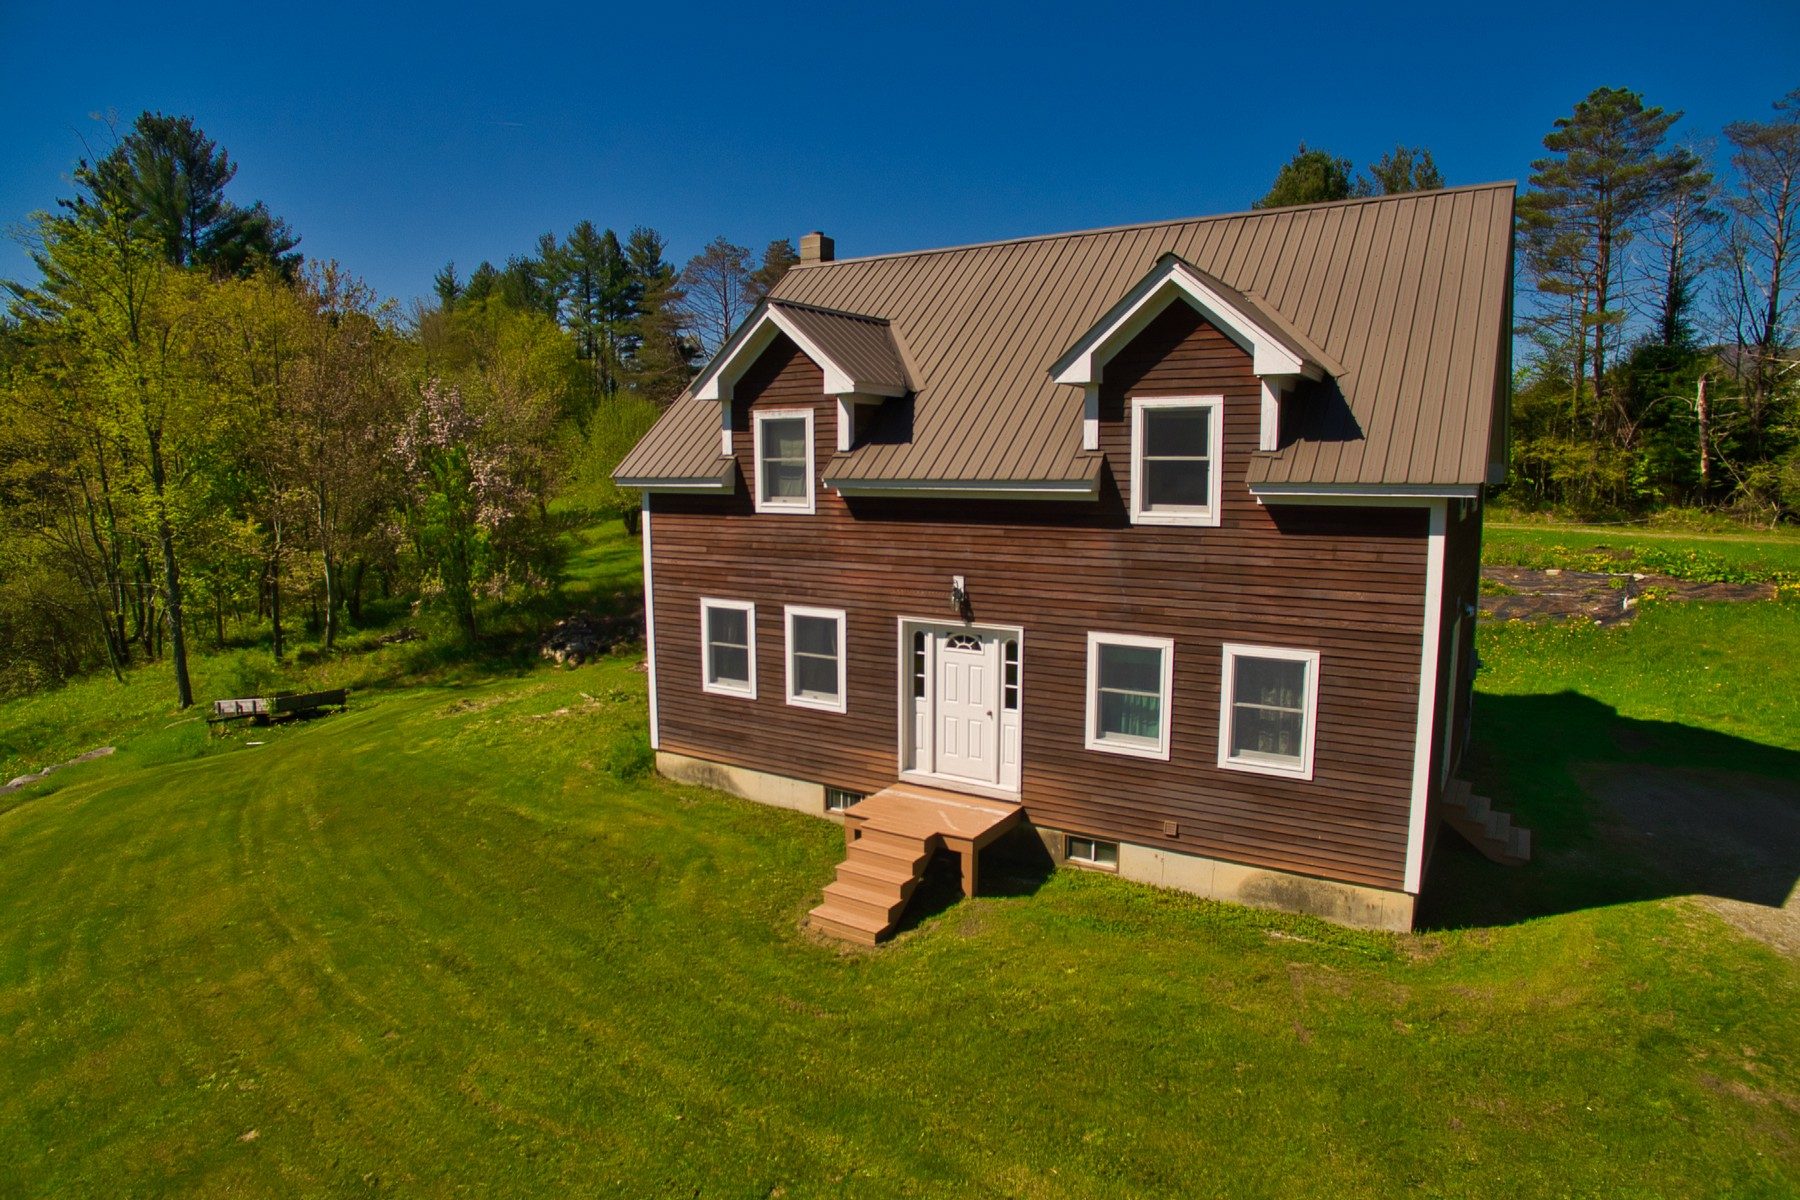 Single Family Home for Sale at Lovely Hi-Posted Cape in Peru 17 Aldrich Rd Peru, Vermont 05152 United States